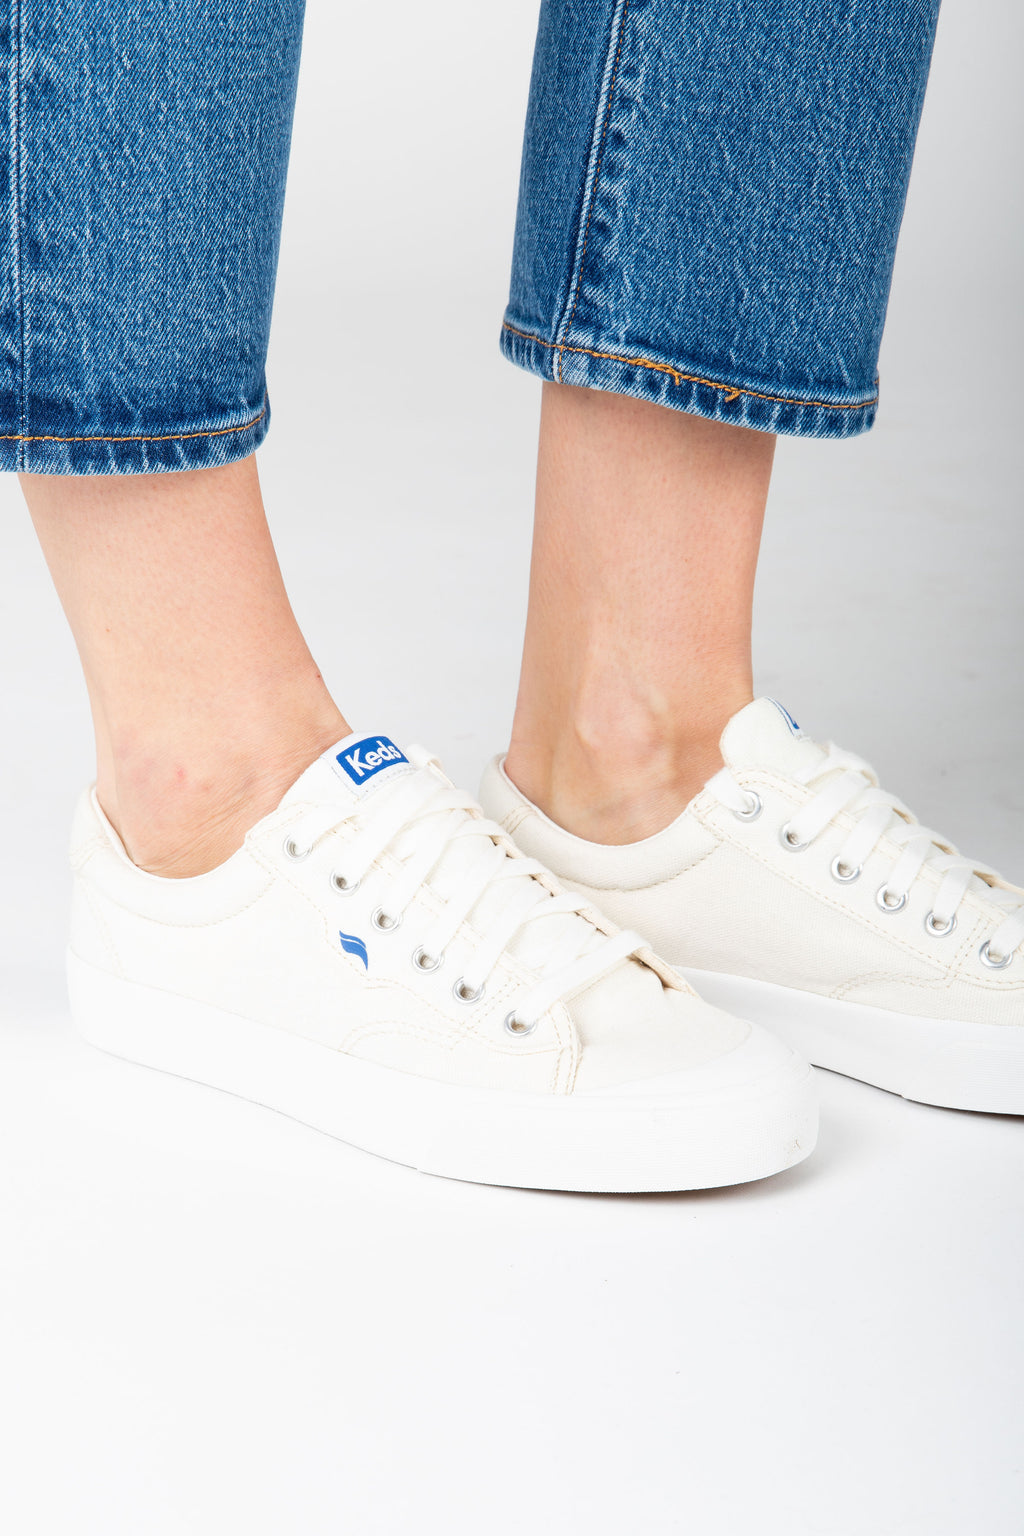 Keds: Crew Kick 75 Canvas in Off White, studio shoot; side view